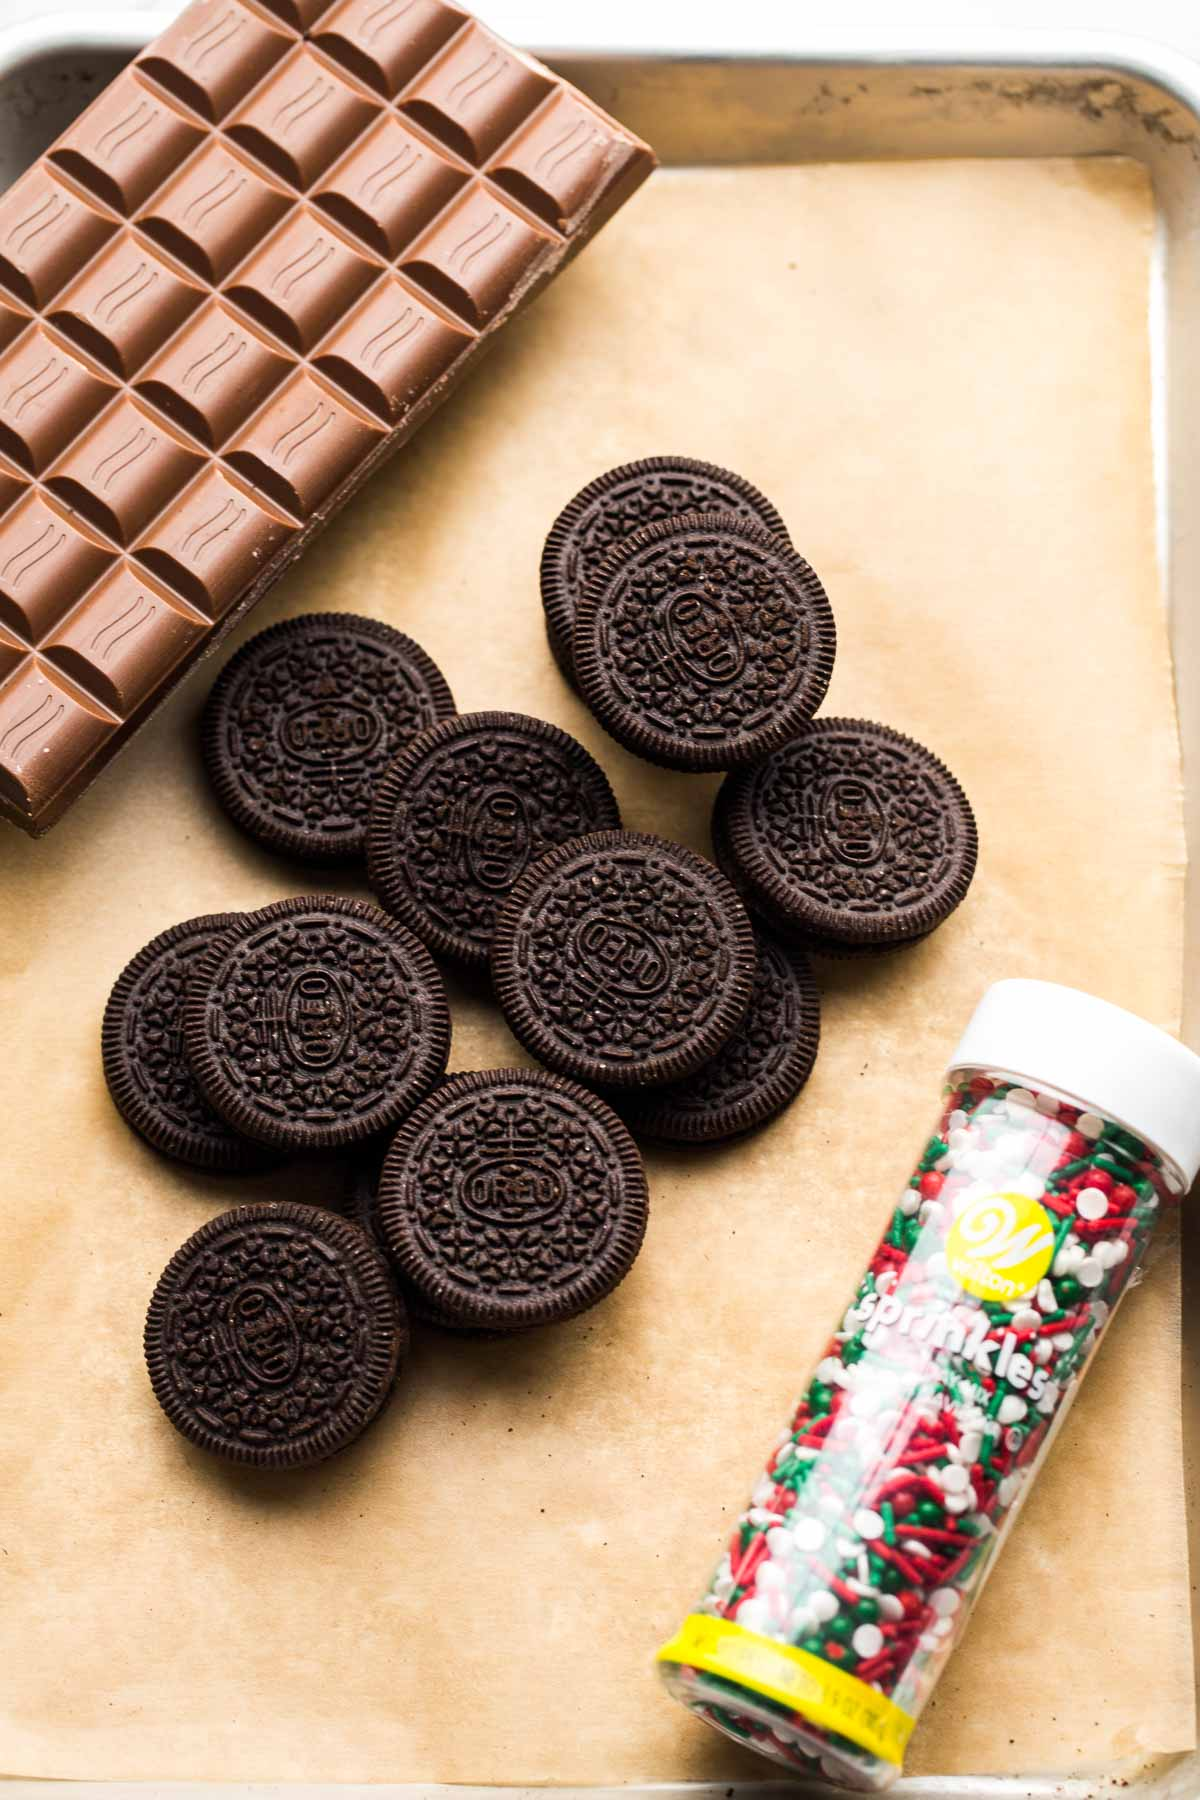 Ingredients needed to make chocolate covered oreos